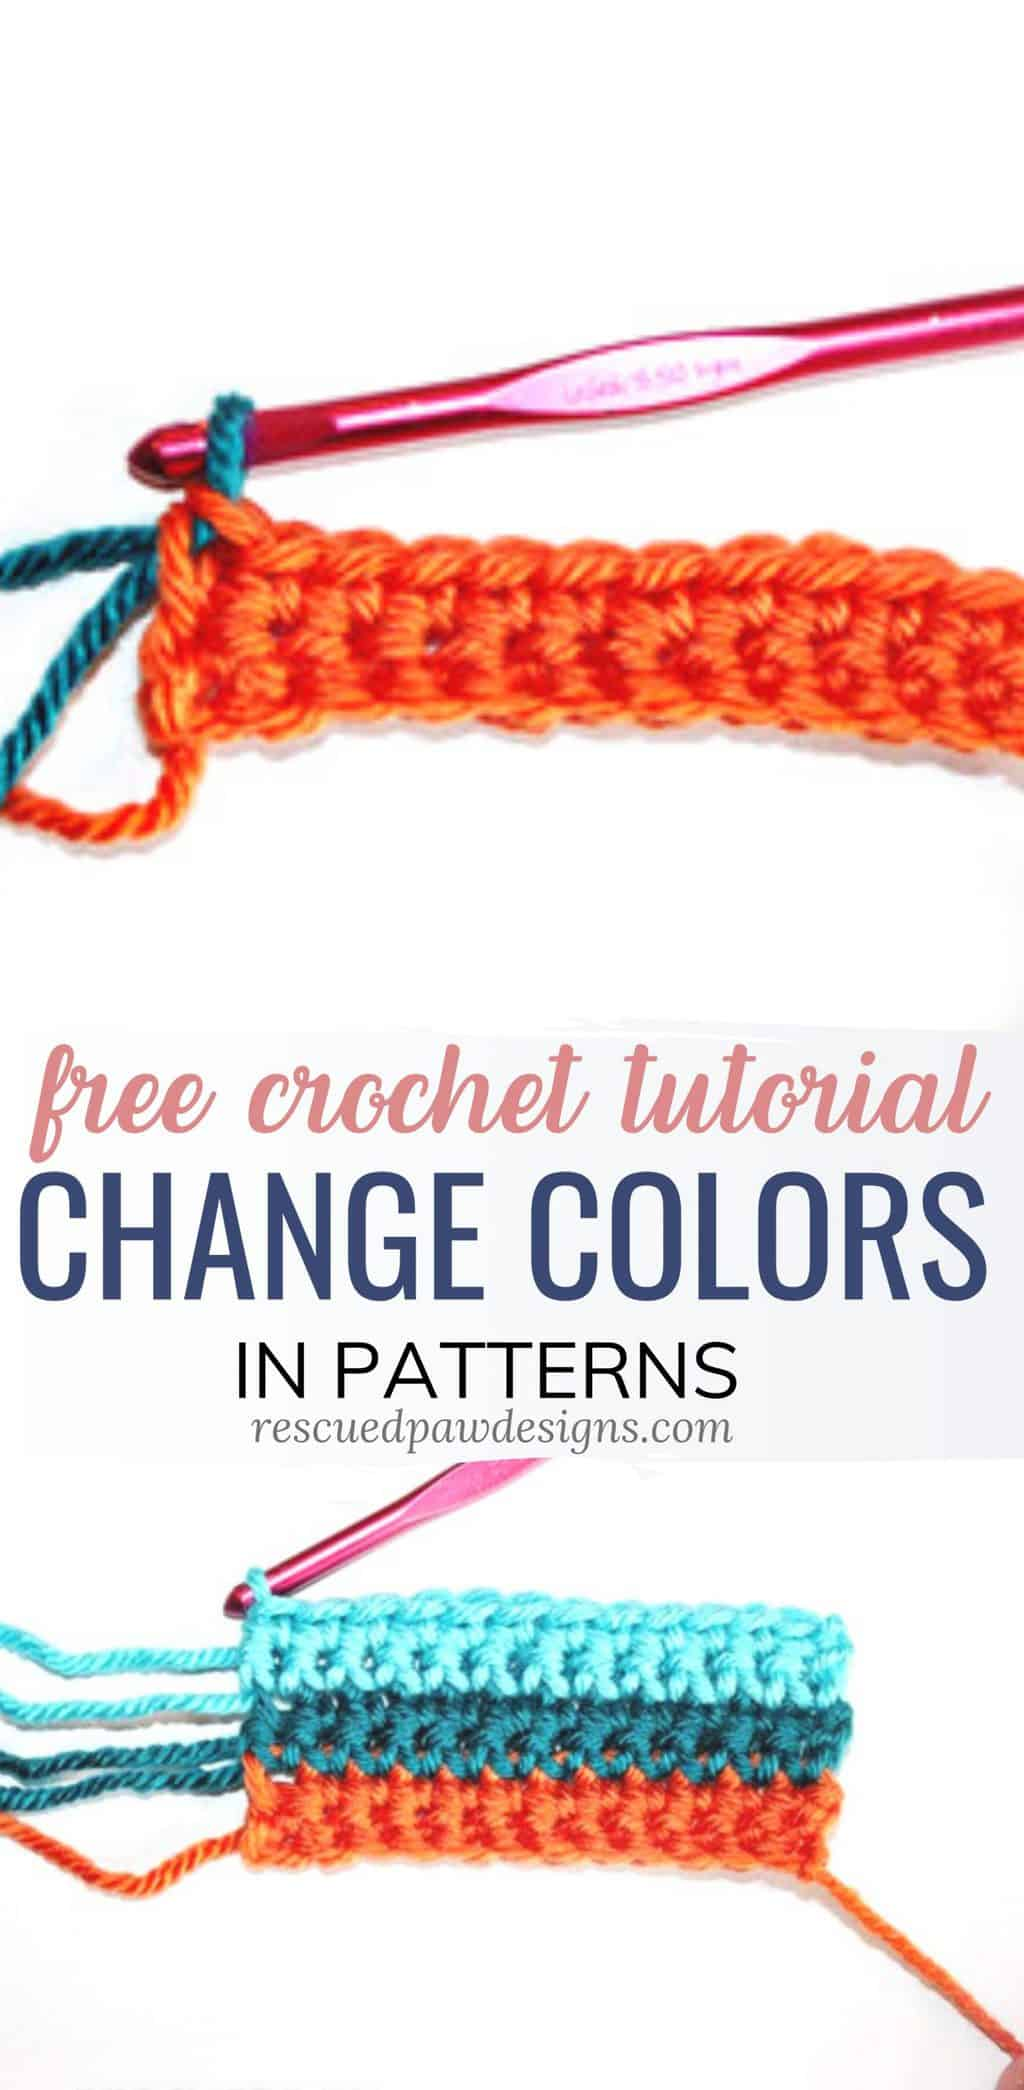 Change colors in crochet tutorial